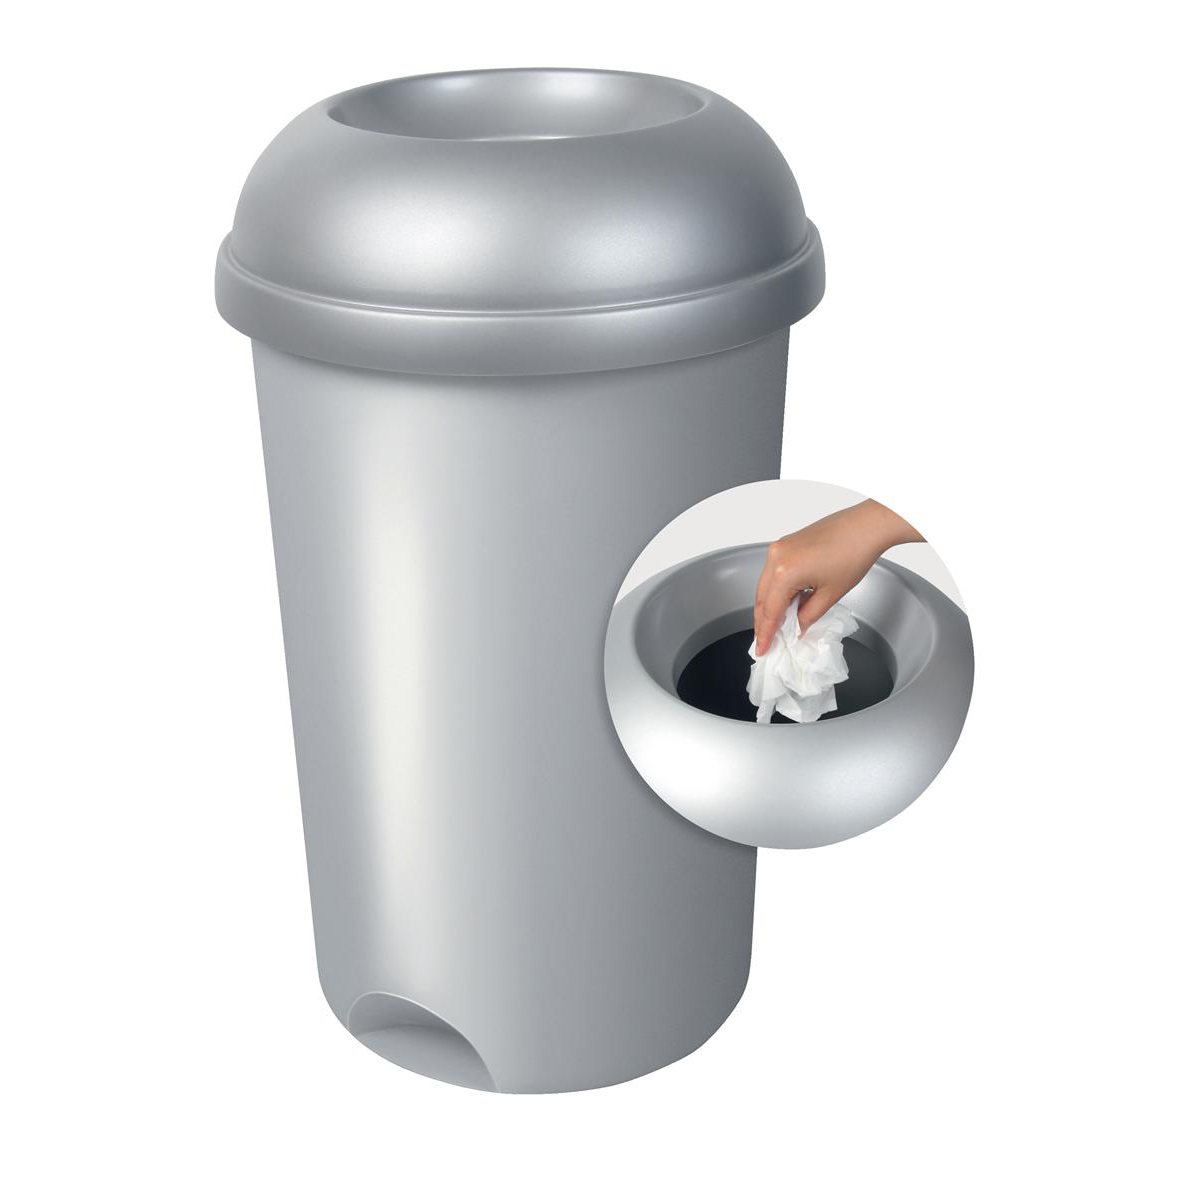 Addis Smart Bin with Lid Capacity 50L Metallic Ref 503579